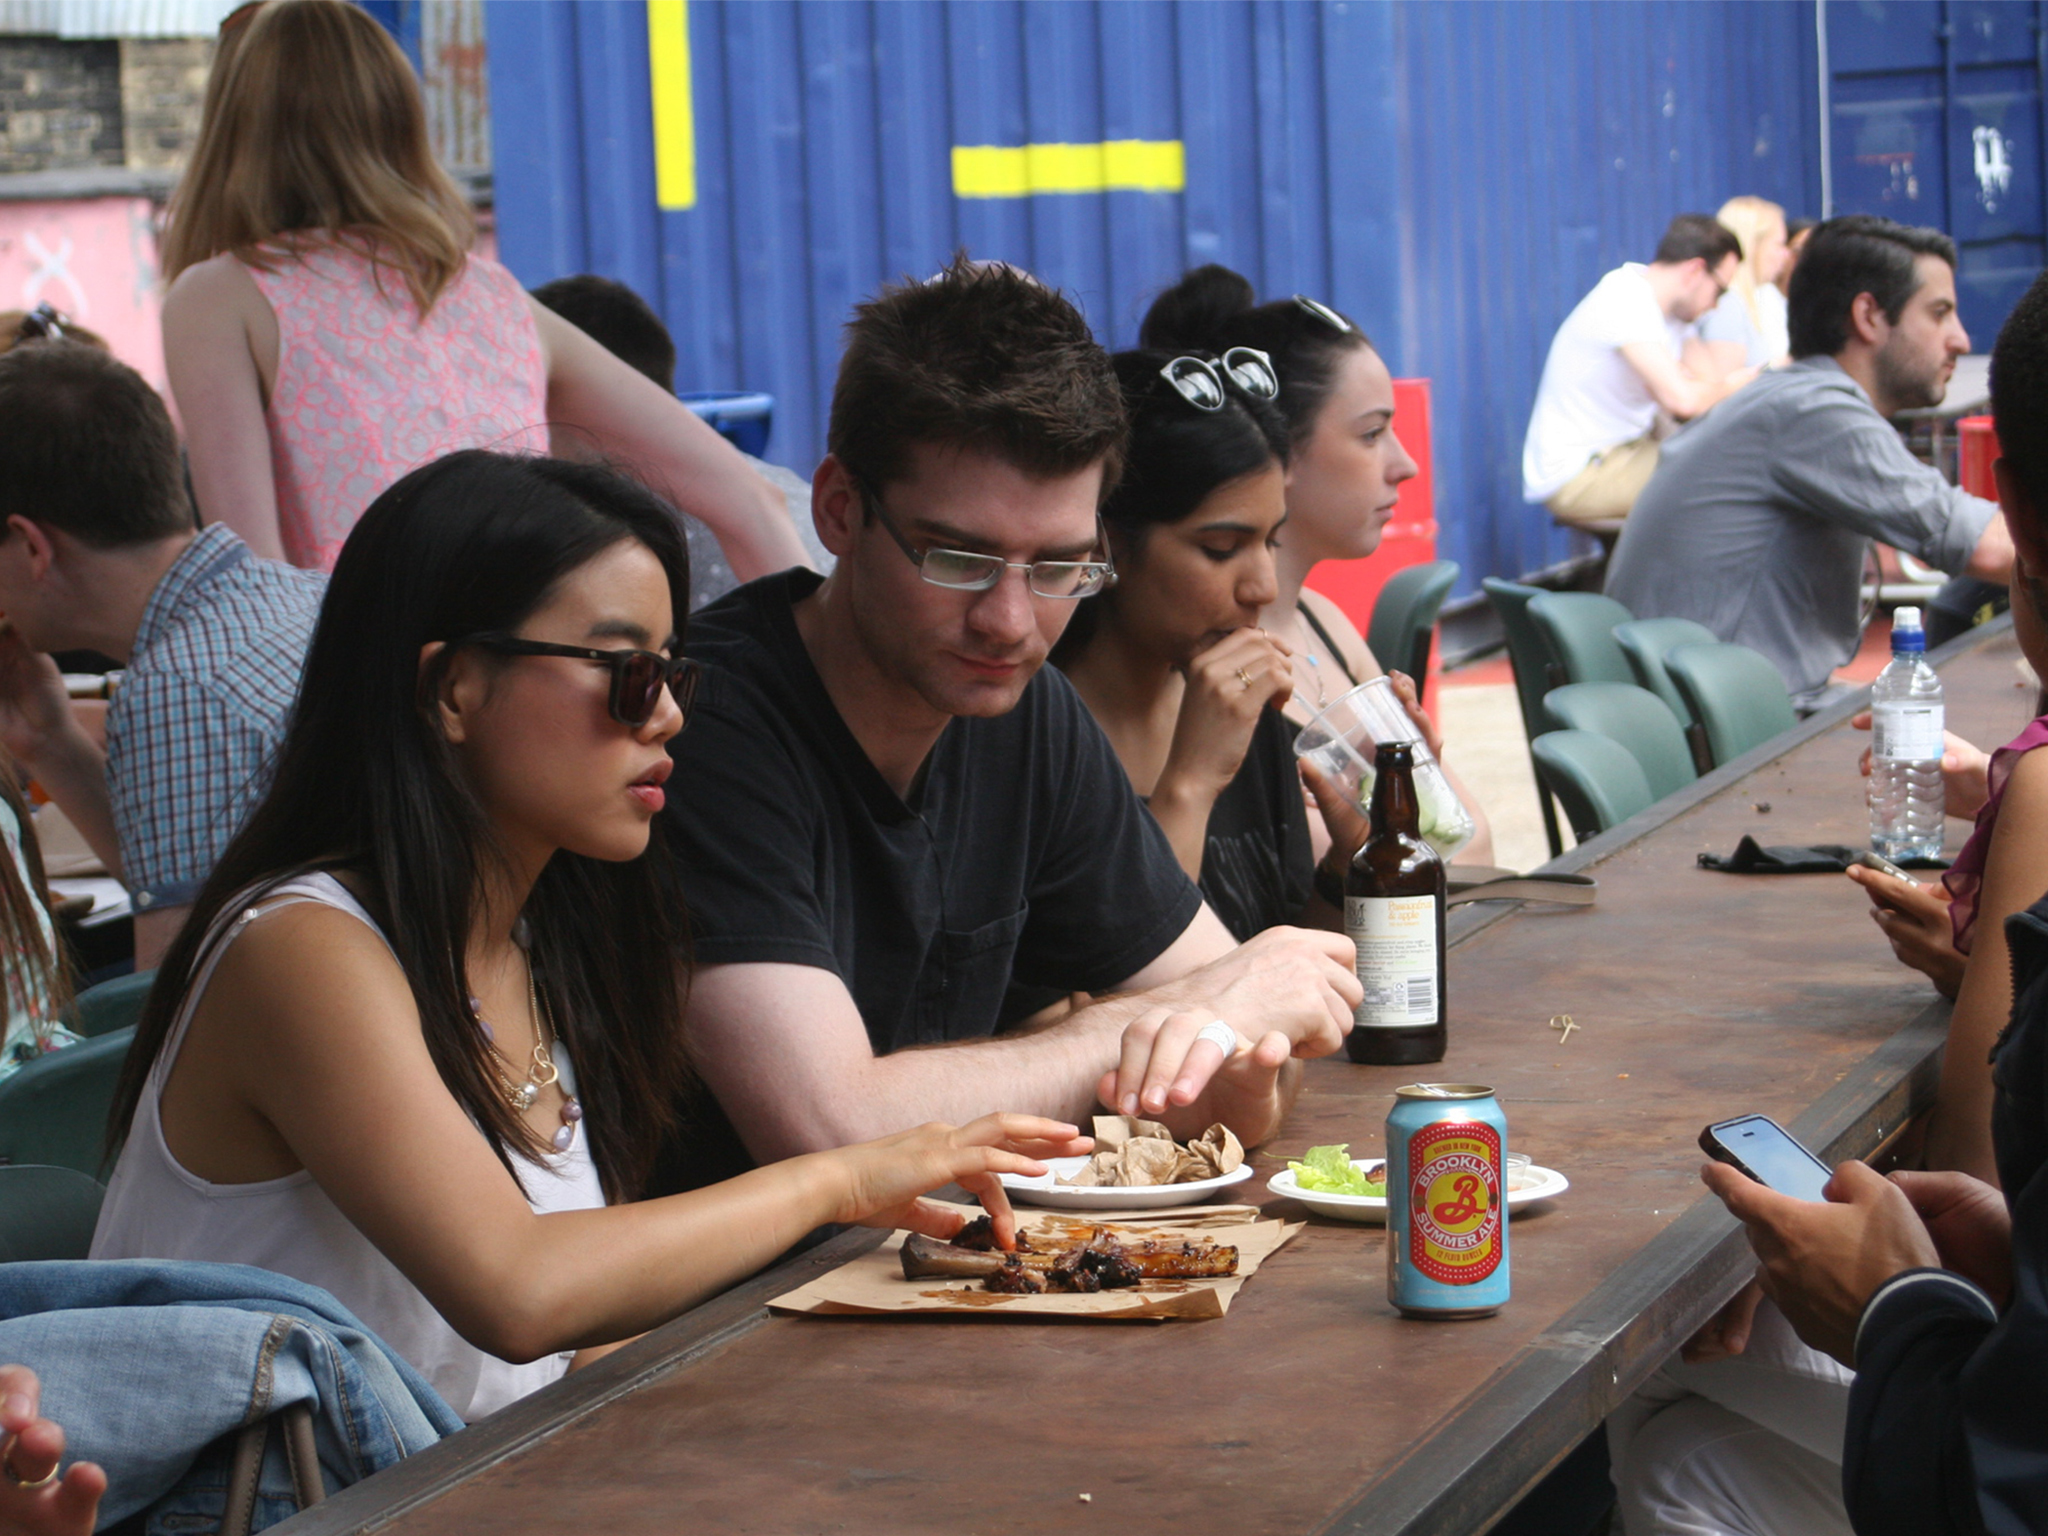 dinerama, street food markets and stalls